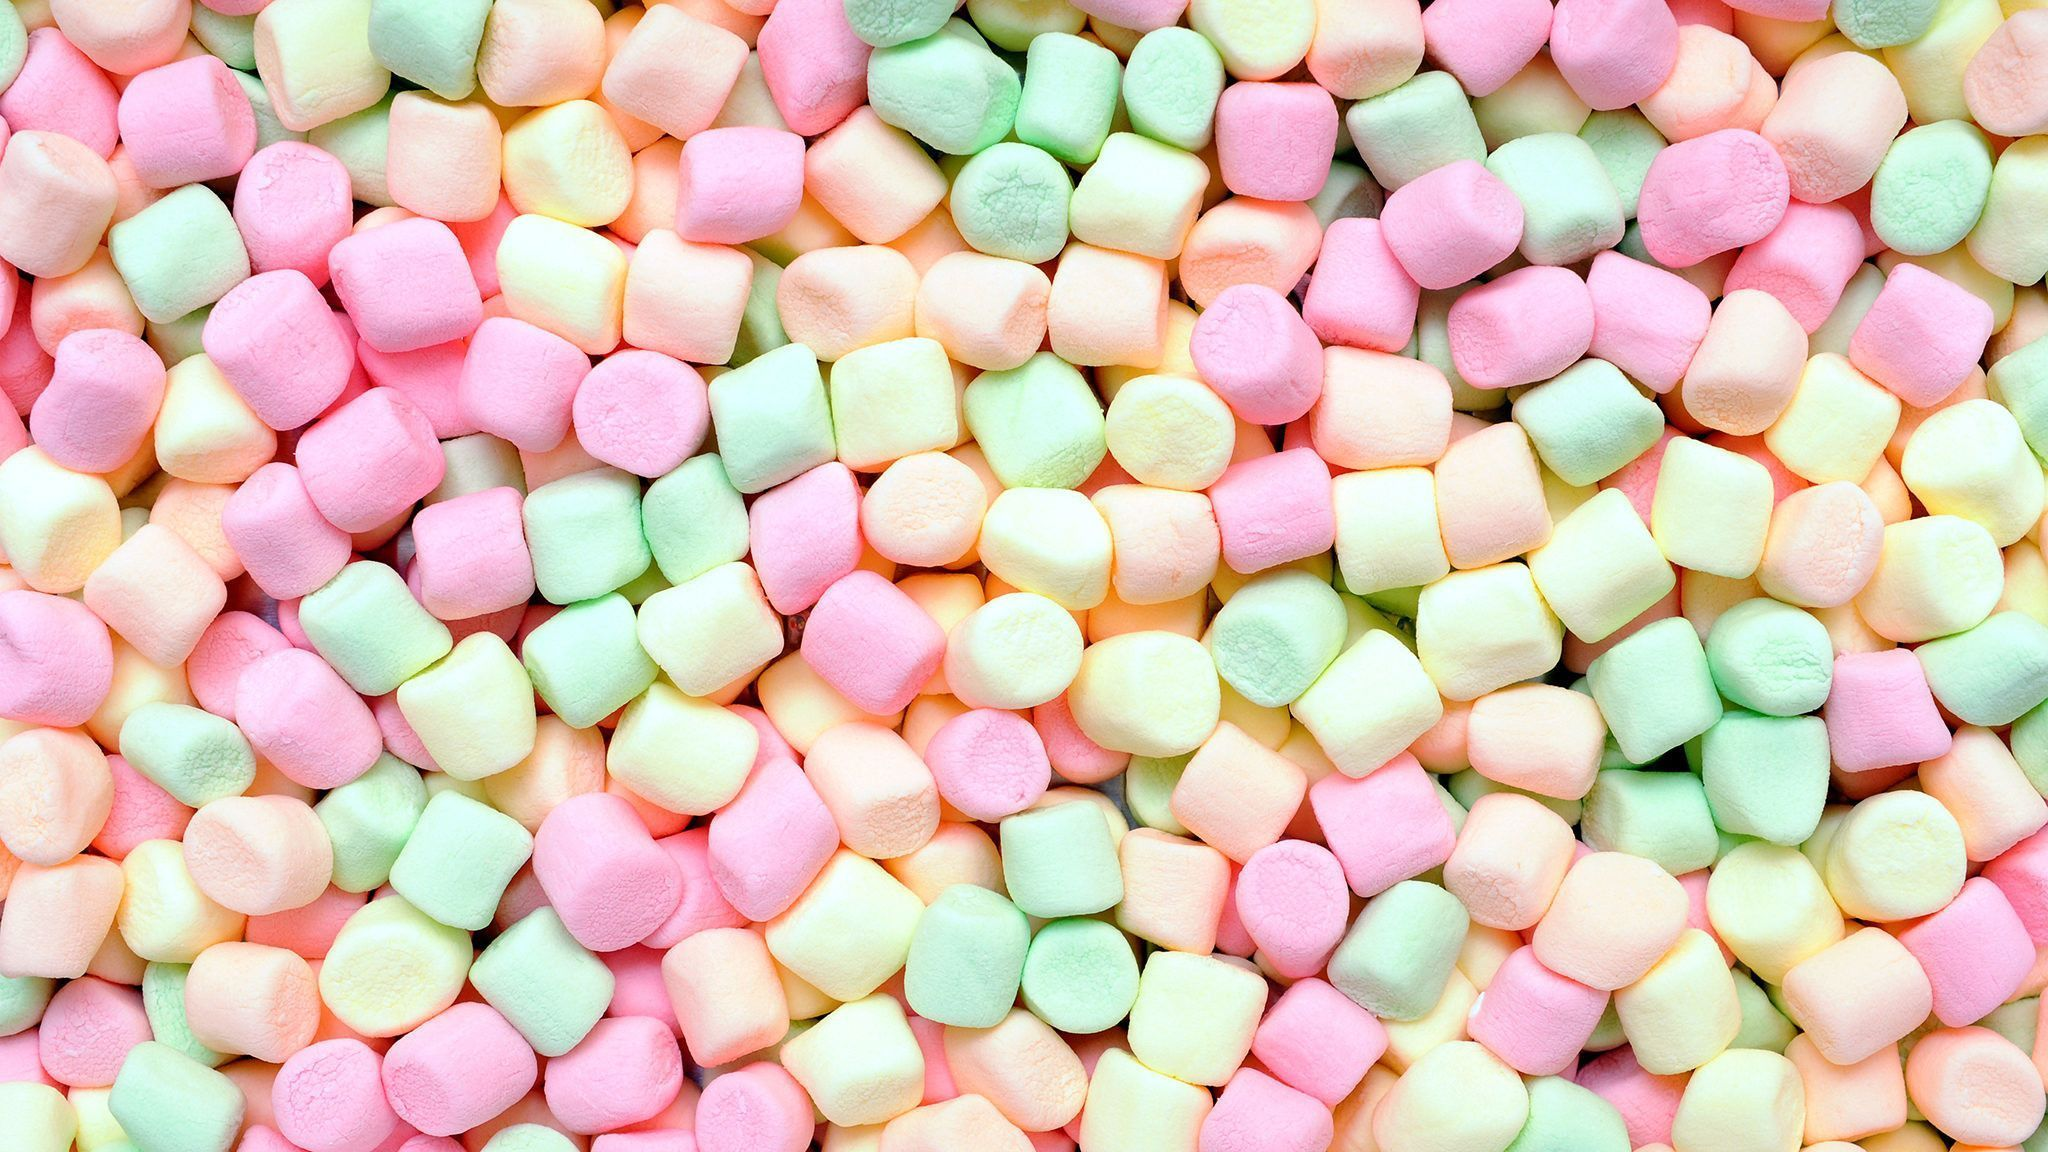 2048x1152 2048x1152 Cute Marshmallow Wallpapers (61+ images ...